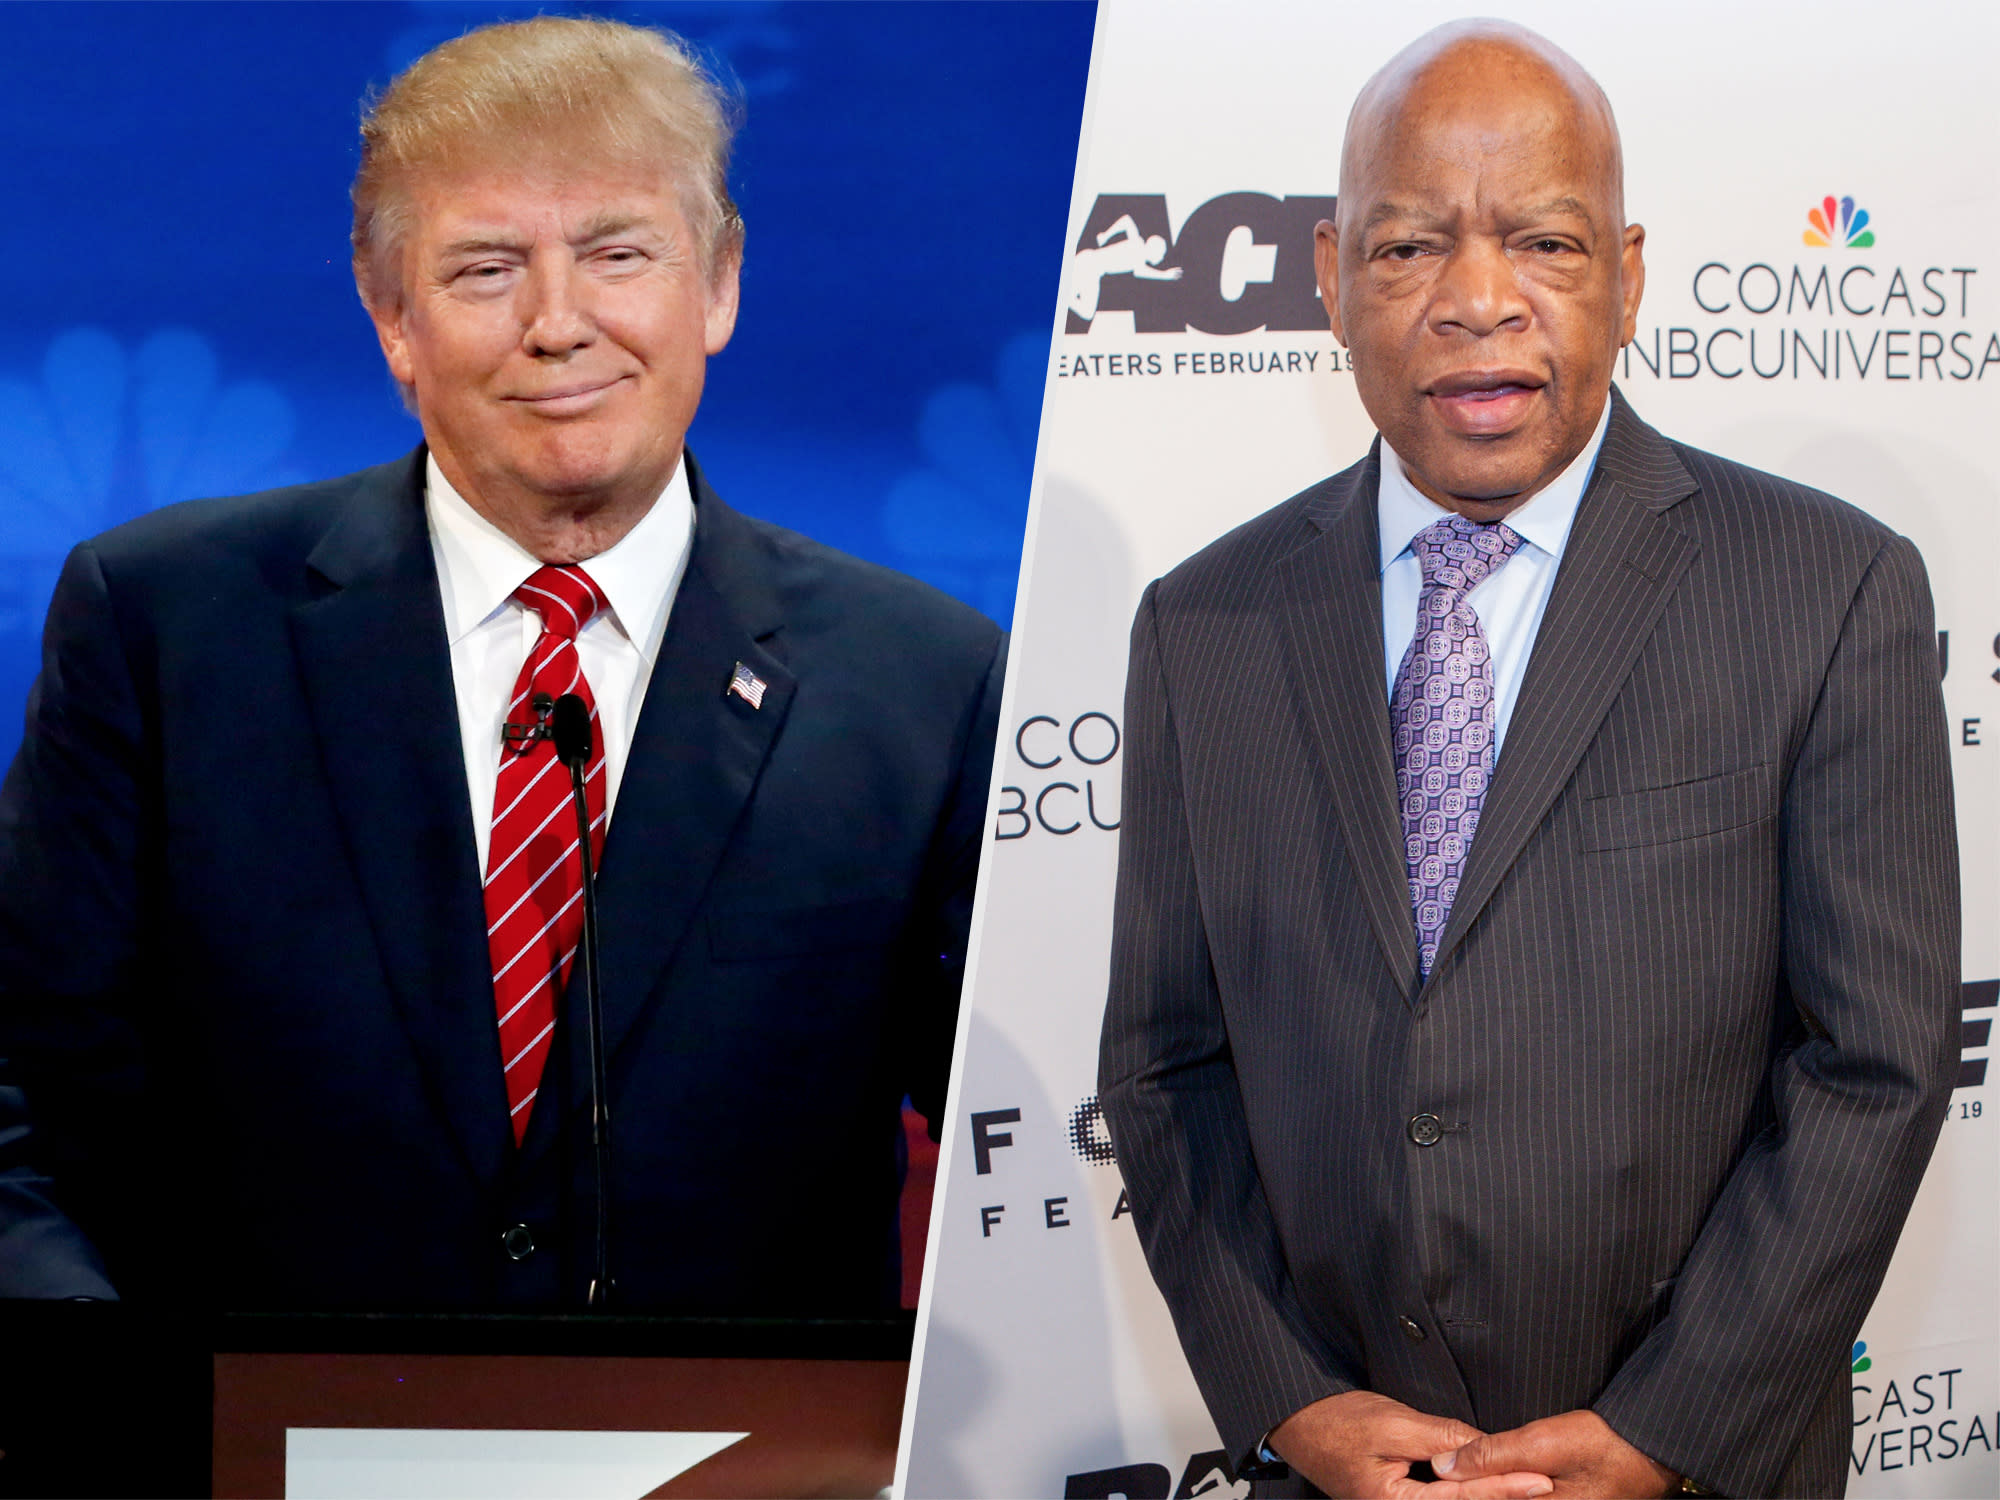 'Cowardly': Donald Trump Faces Backlash for Attacking Legendary Civil Rights Leader John Lewis